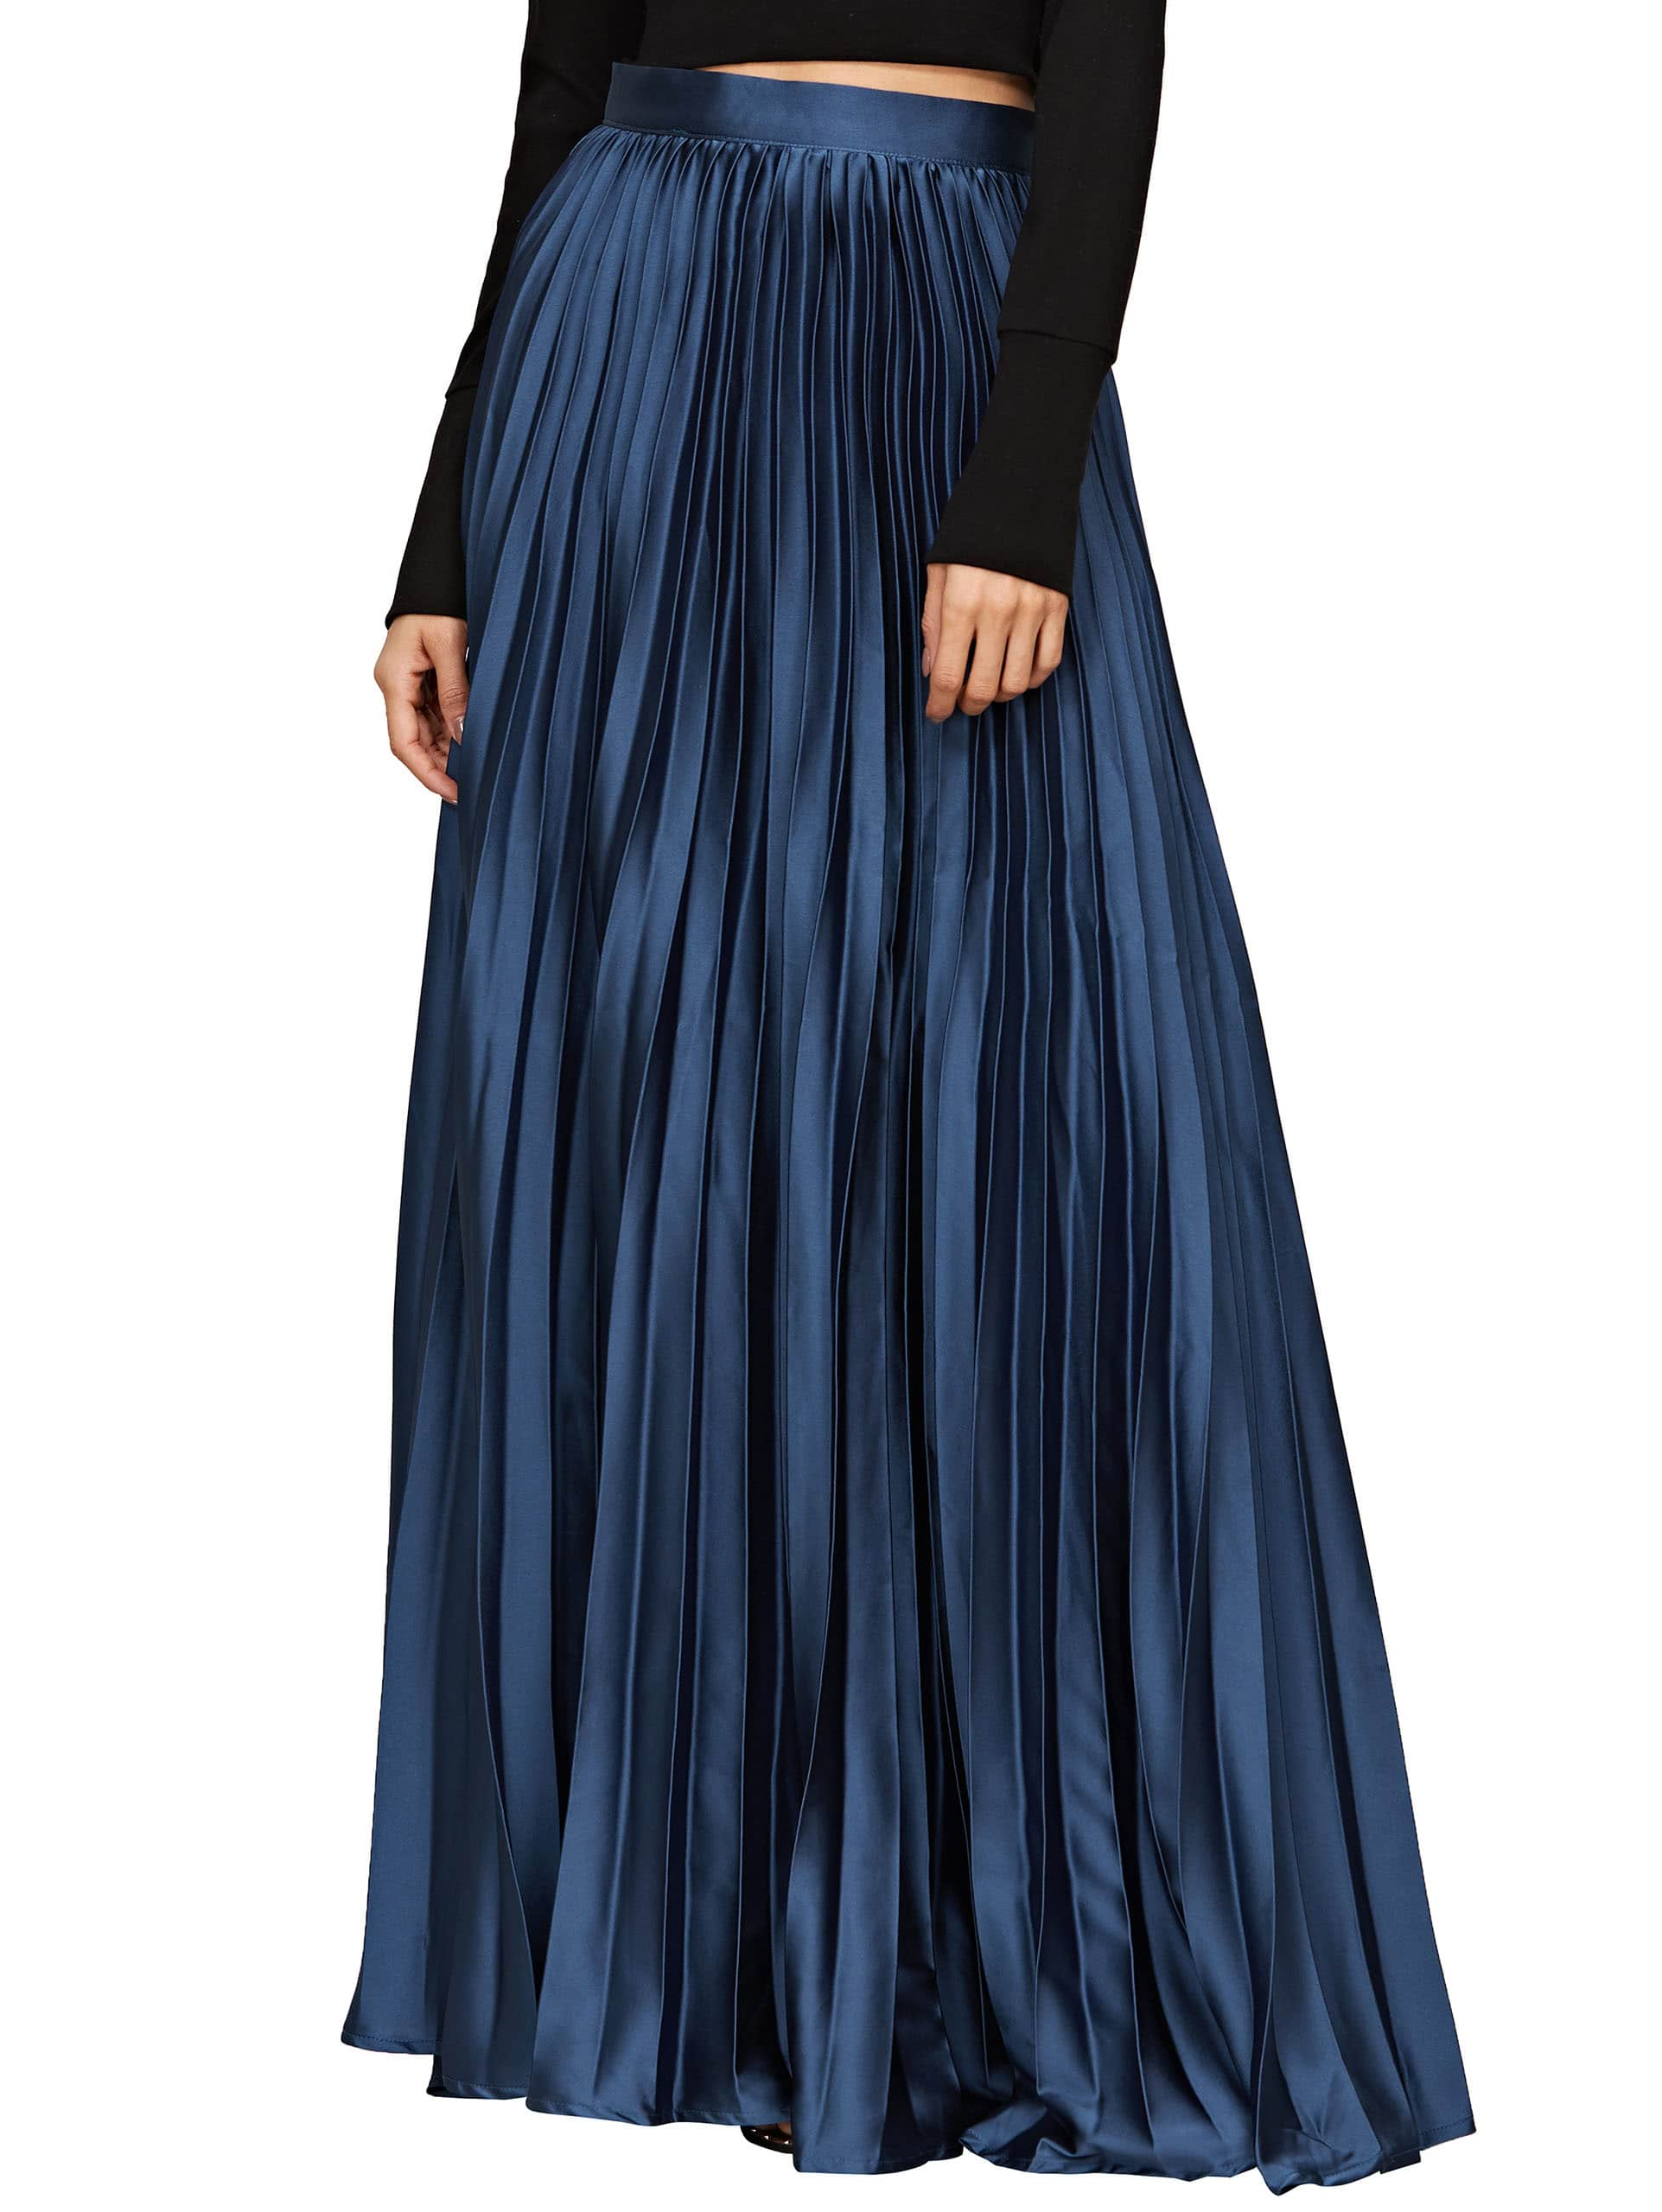 Satin Pleated Full Length Skirt -SheIn(Sheinside)